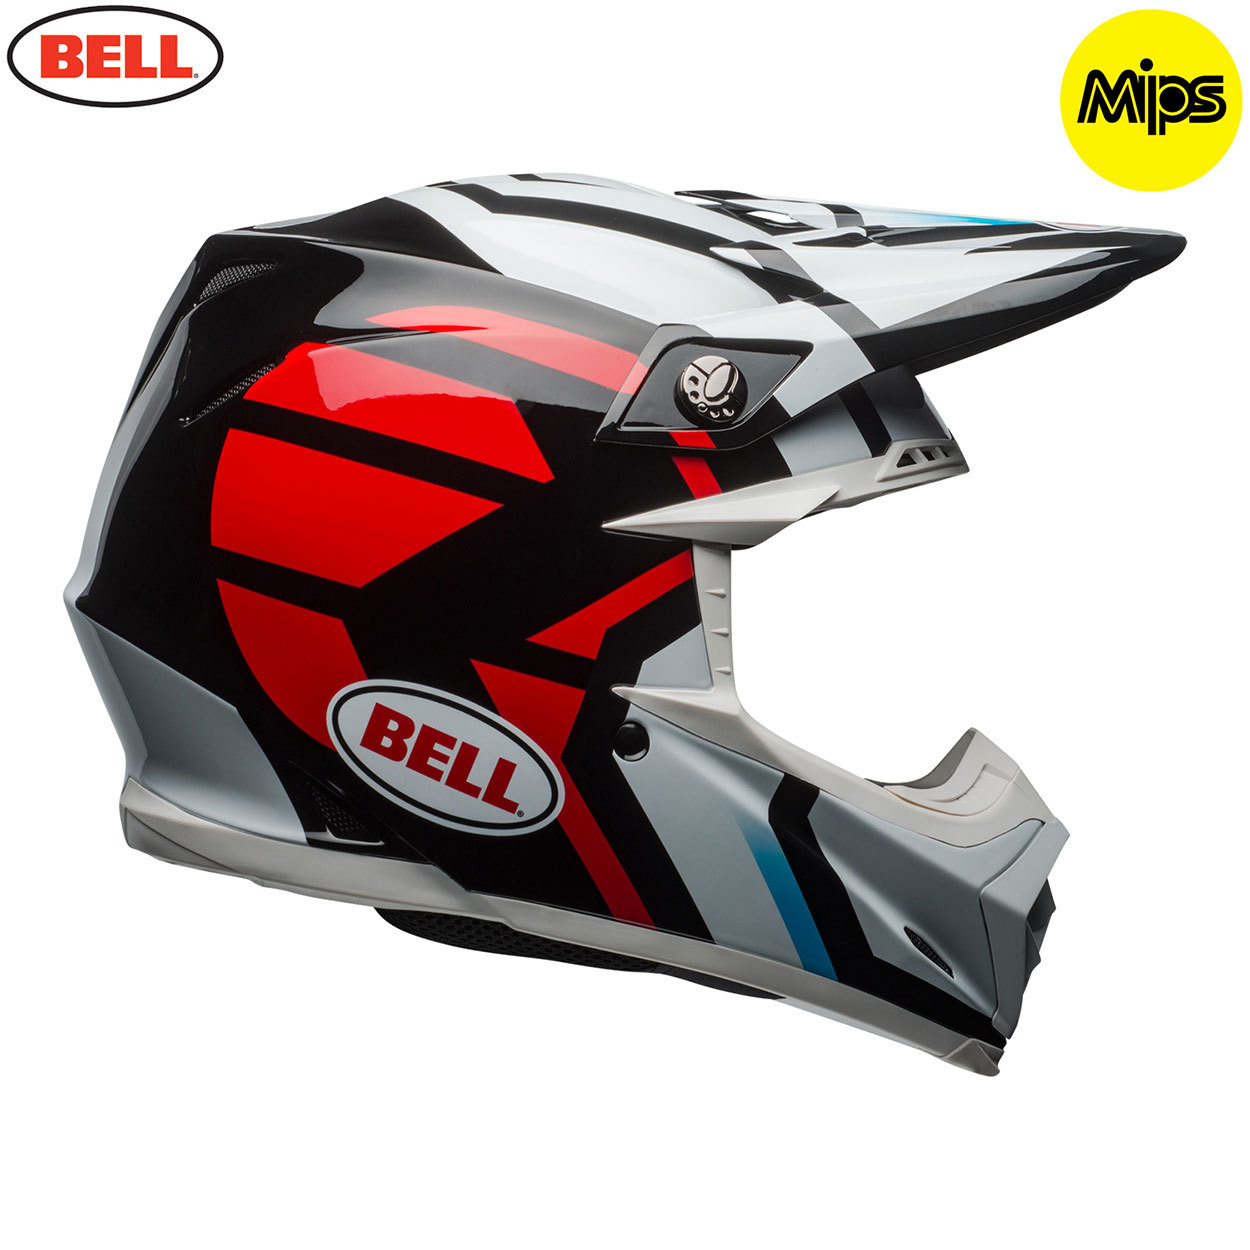 0cac7770c3dd0 Bell MX 2018 Moto-9 Mips Adult Helmet (District White/Black/Red)